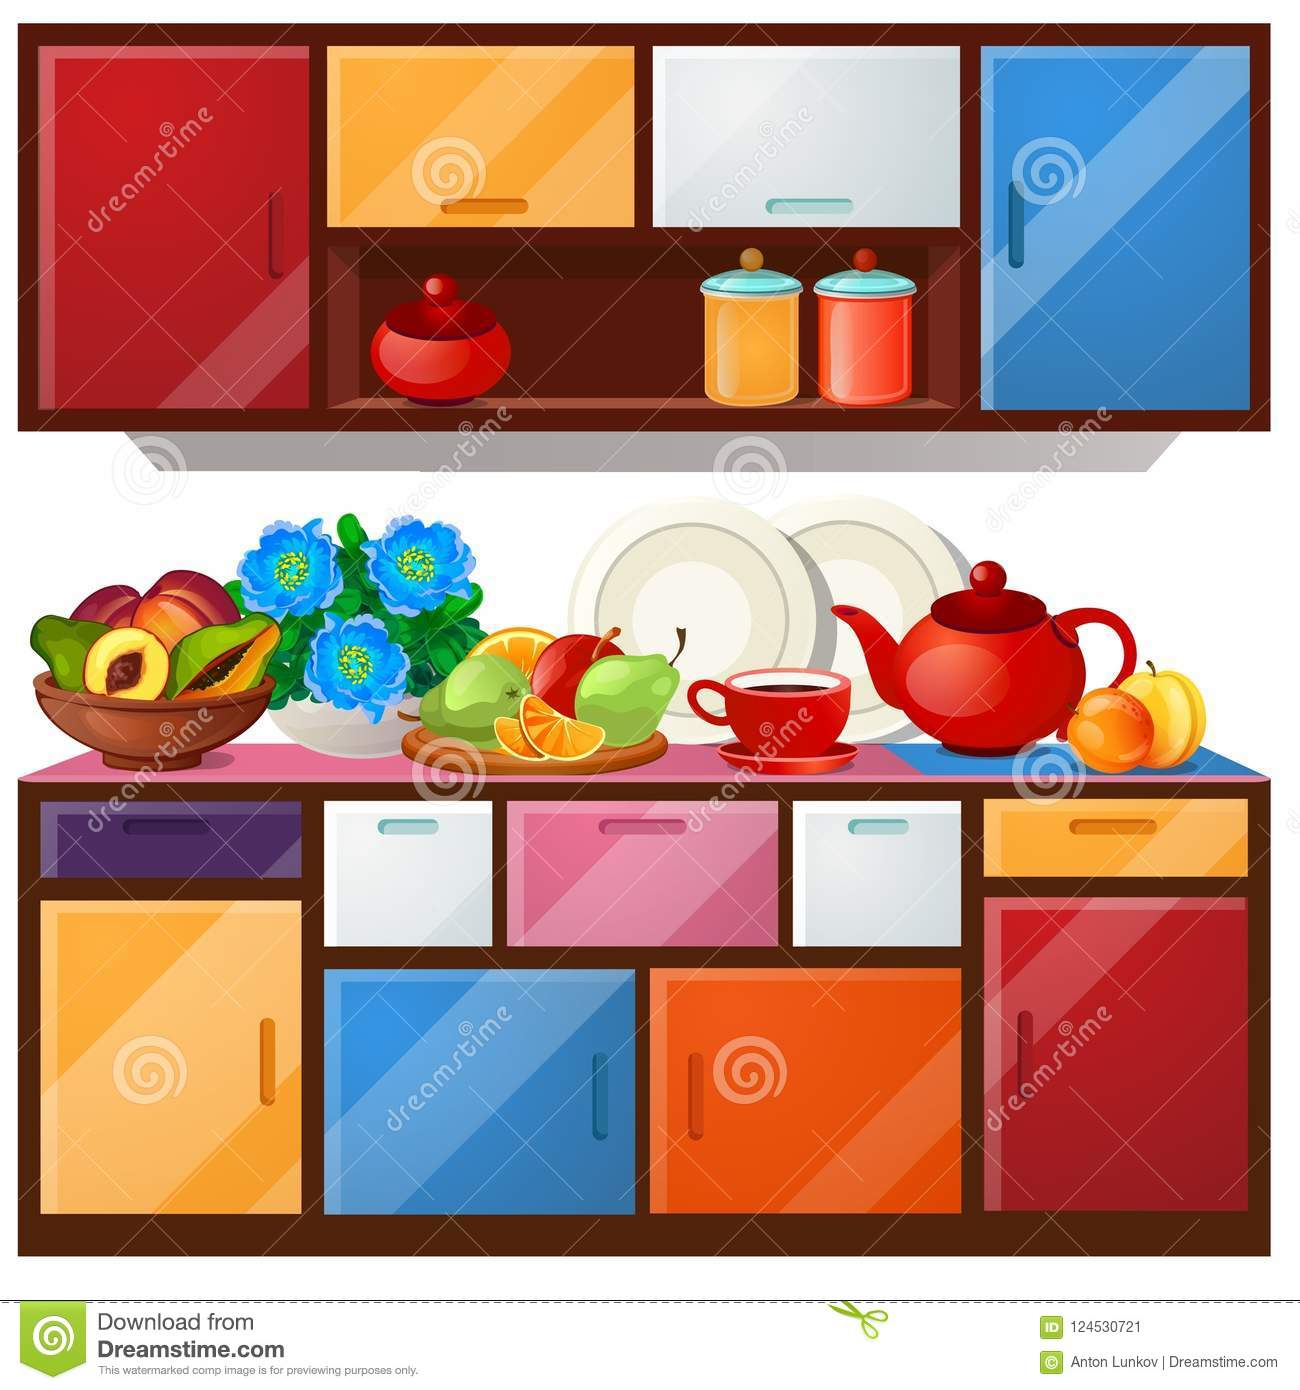 Colored Kitchen Cupboard, Dishes And Fresh Fruit Isolated On White on mirror clipart, tv clipart, closet clipart, refrigerator clipart, kitchen house clipart, bed clipart, kitchen bowl clipart, kitchen appliances clipart, wood clipart, chair clipart, furniture clipart, window clipart, stove clipart, kitchen interior clipart, doors clipart, kitchen accessories clipart, bedroom clipart, kitchen island clipart, kitchen counter clipart, kitchen stand clipart,